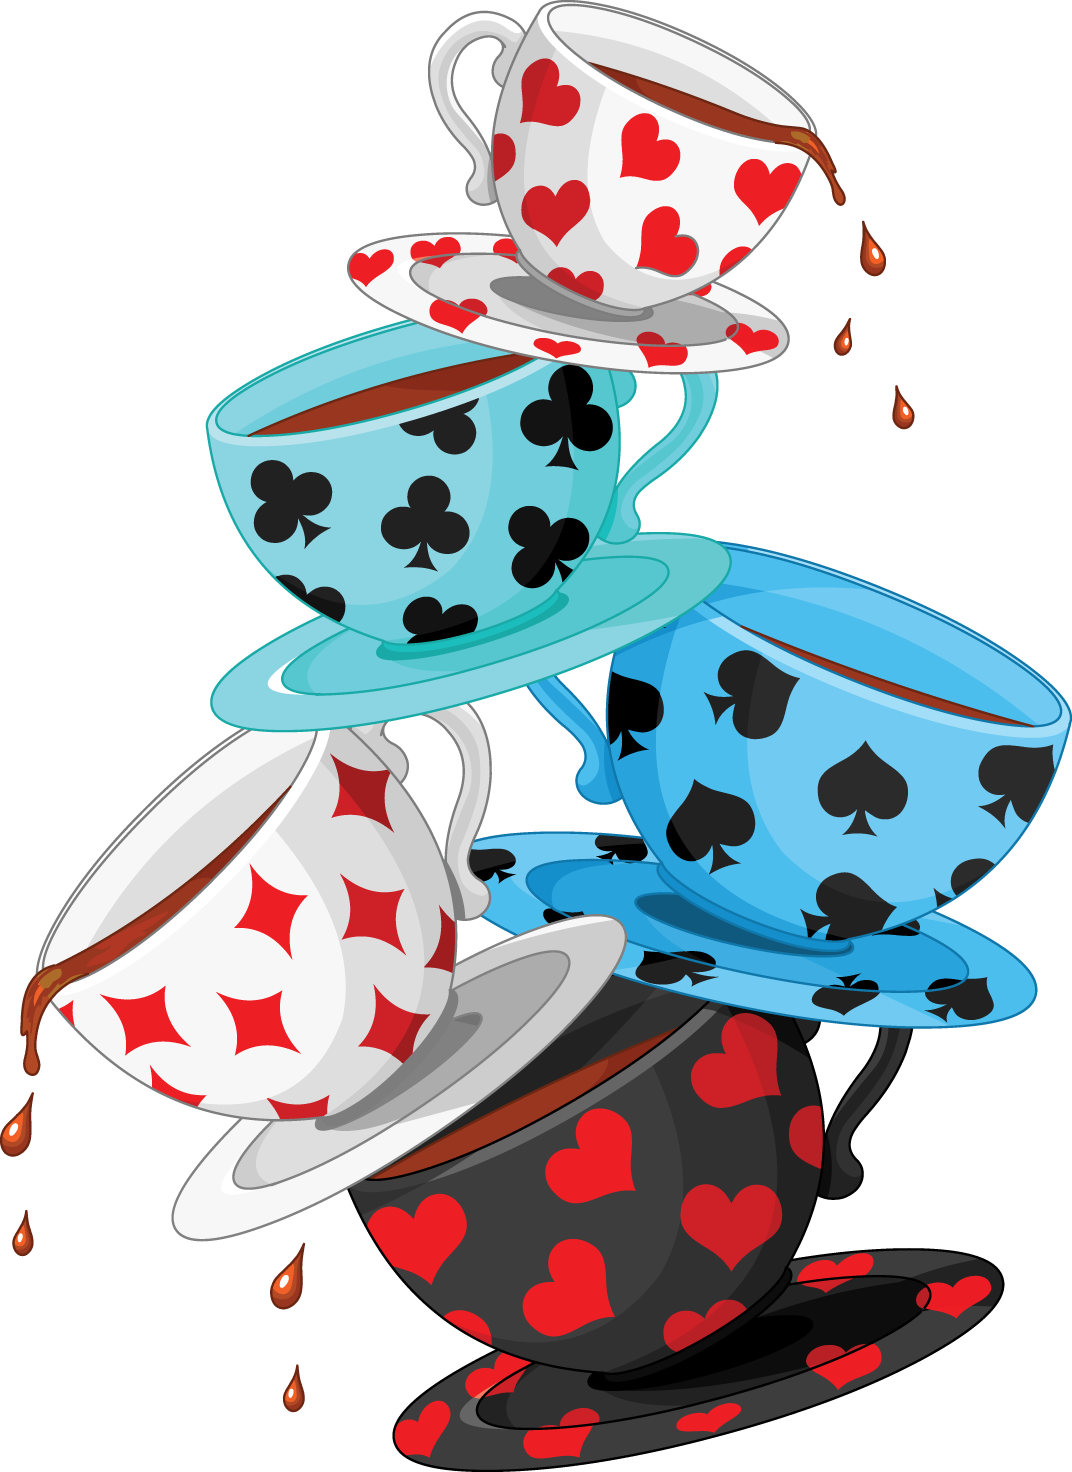 Cup Clipart Mad Hatter Tea Cup Mad Hatter Tea Transparent Free For Download On Webstockreview 2020